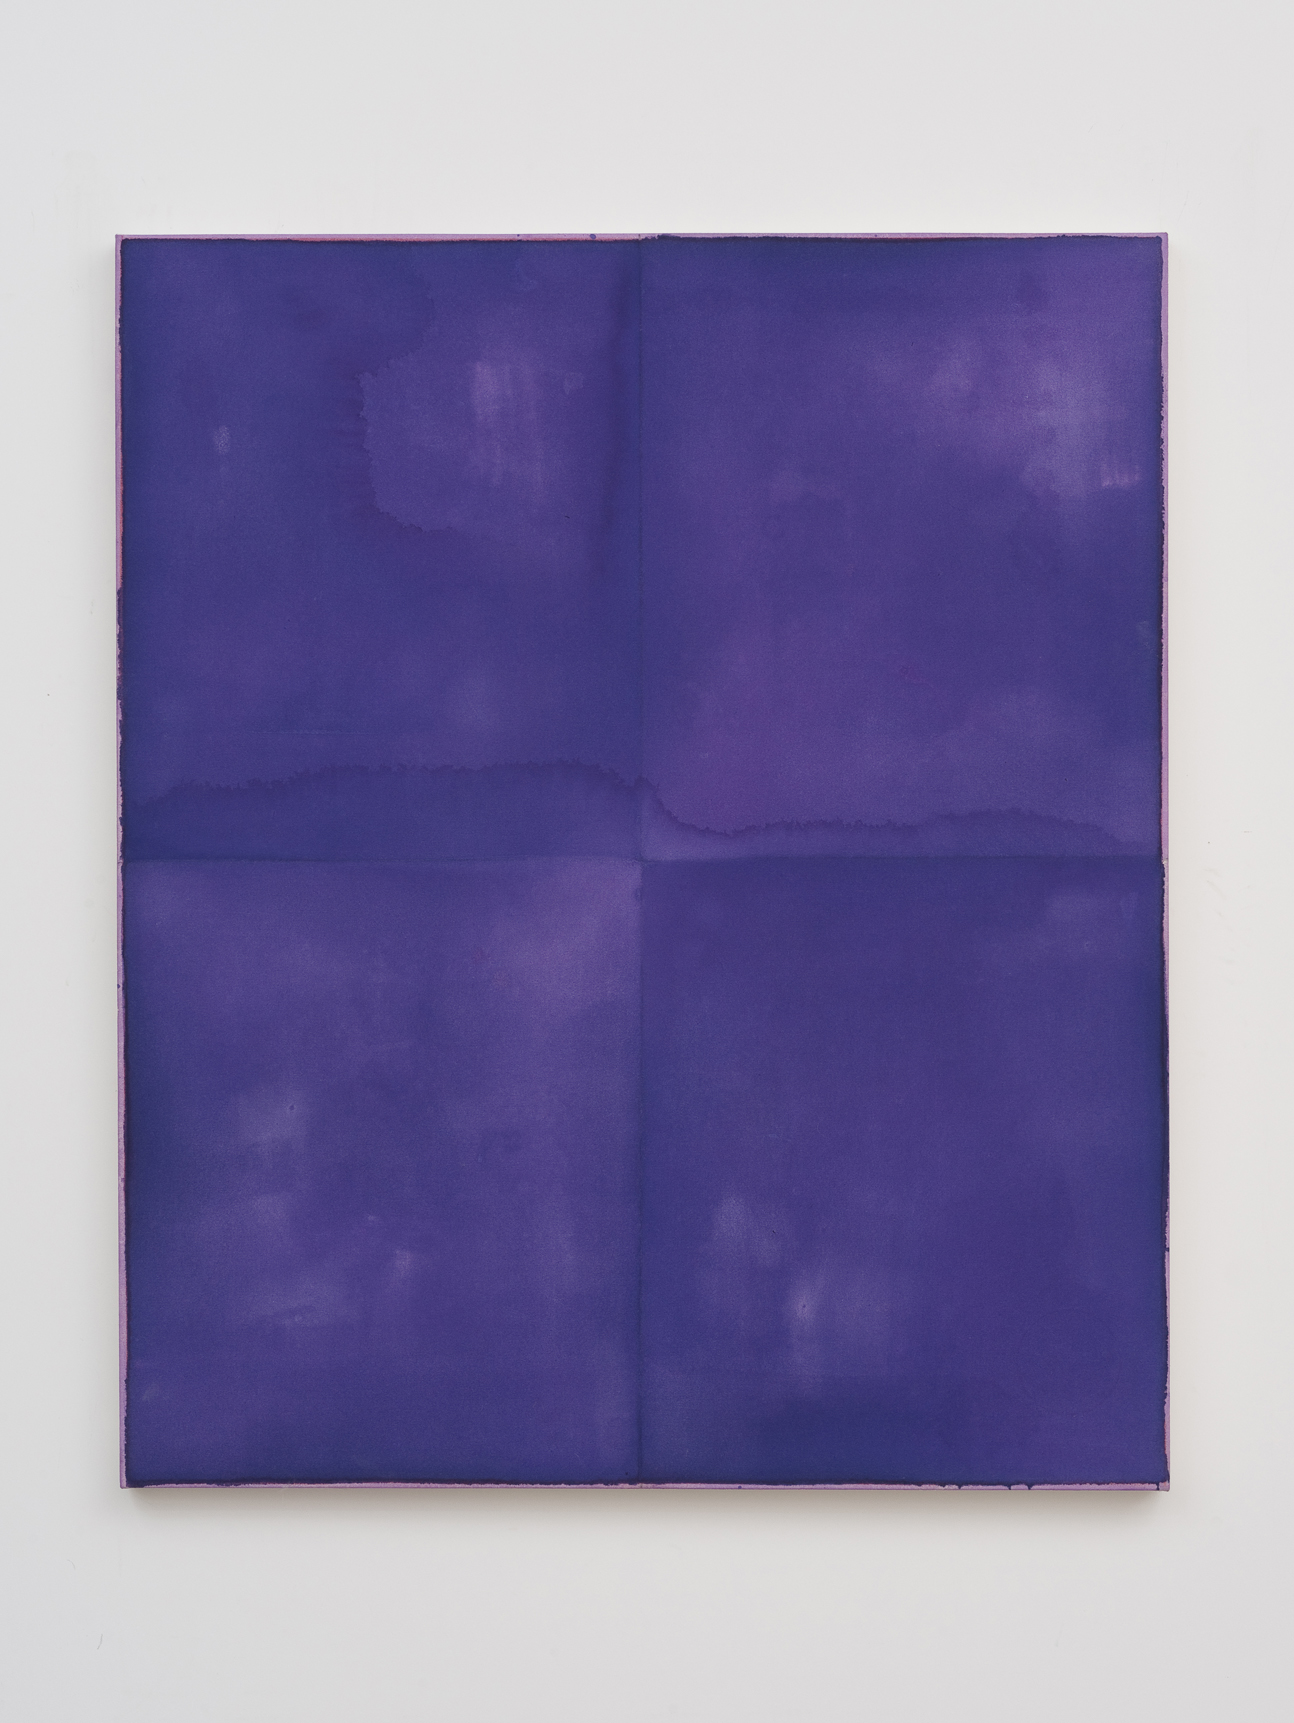 Violet Example   Monochrome / individually treated quadrants   2013   Acrylic and pencil on canvas:   127 x 106.8 cm / 50 x 42 in